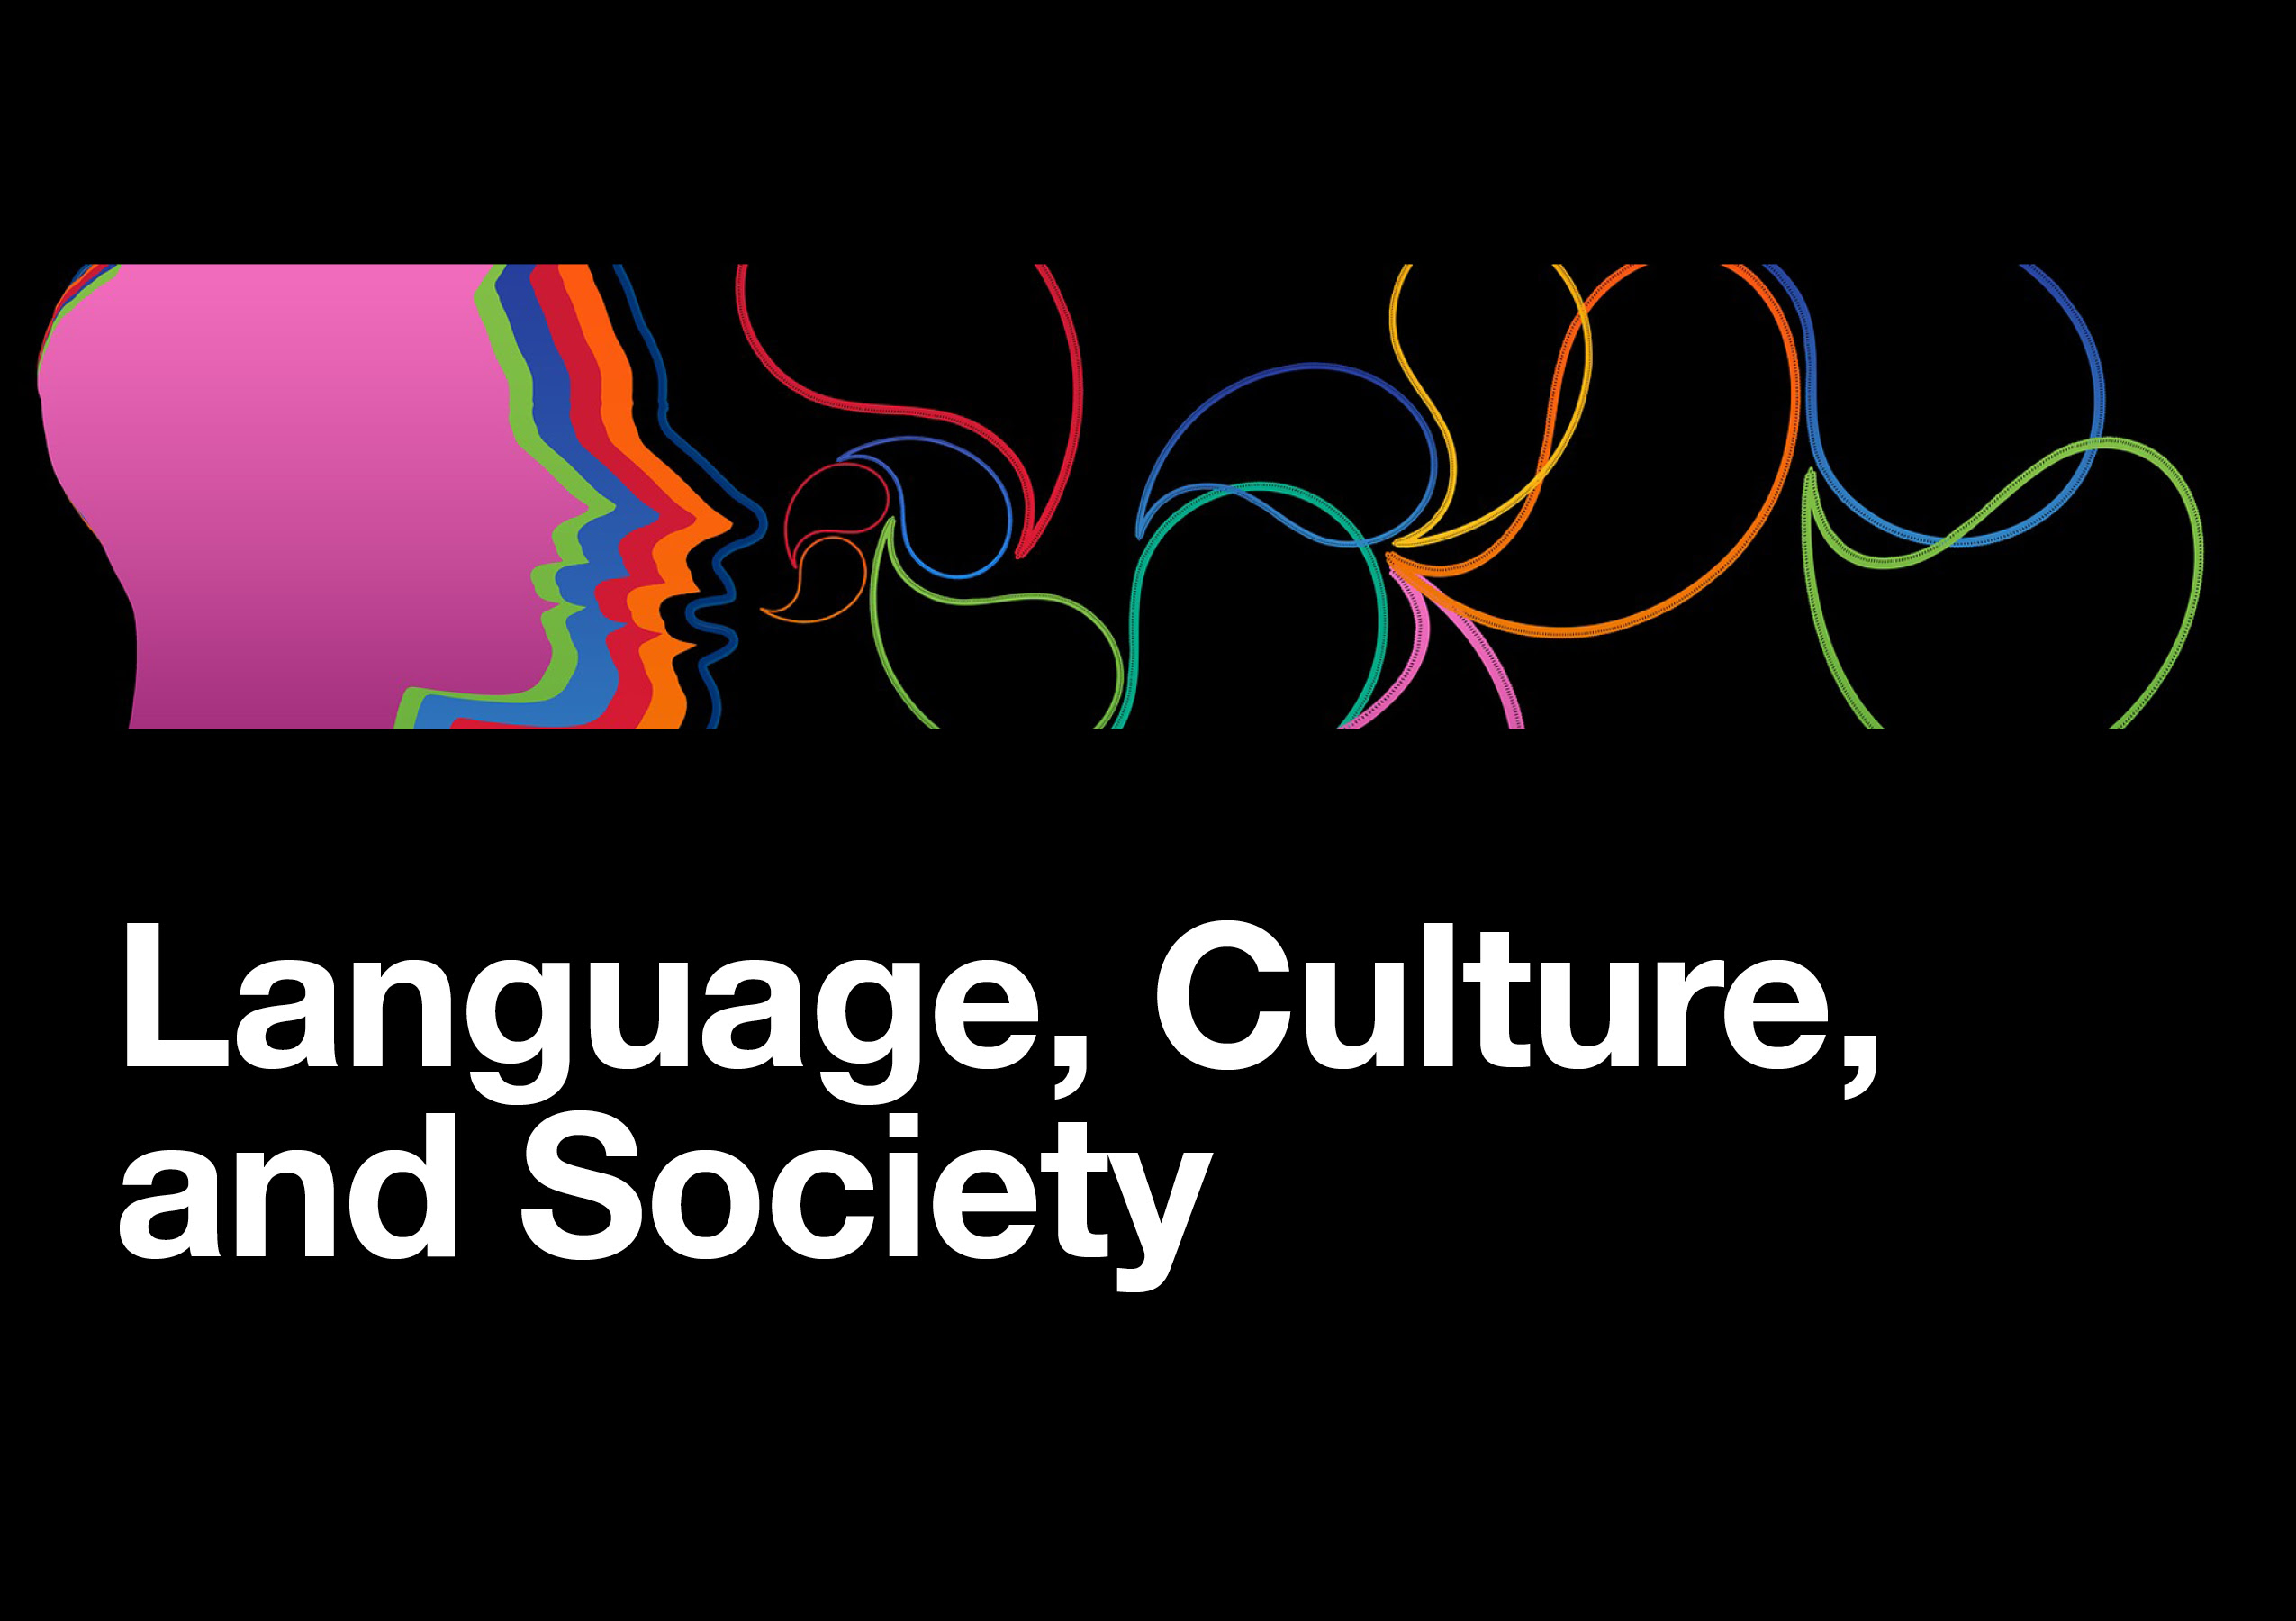 Language, Culture and Society